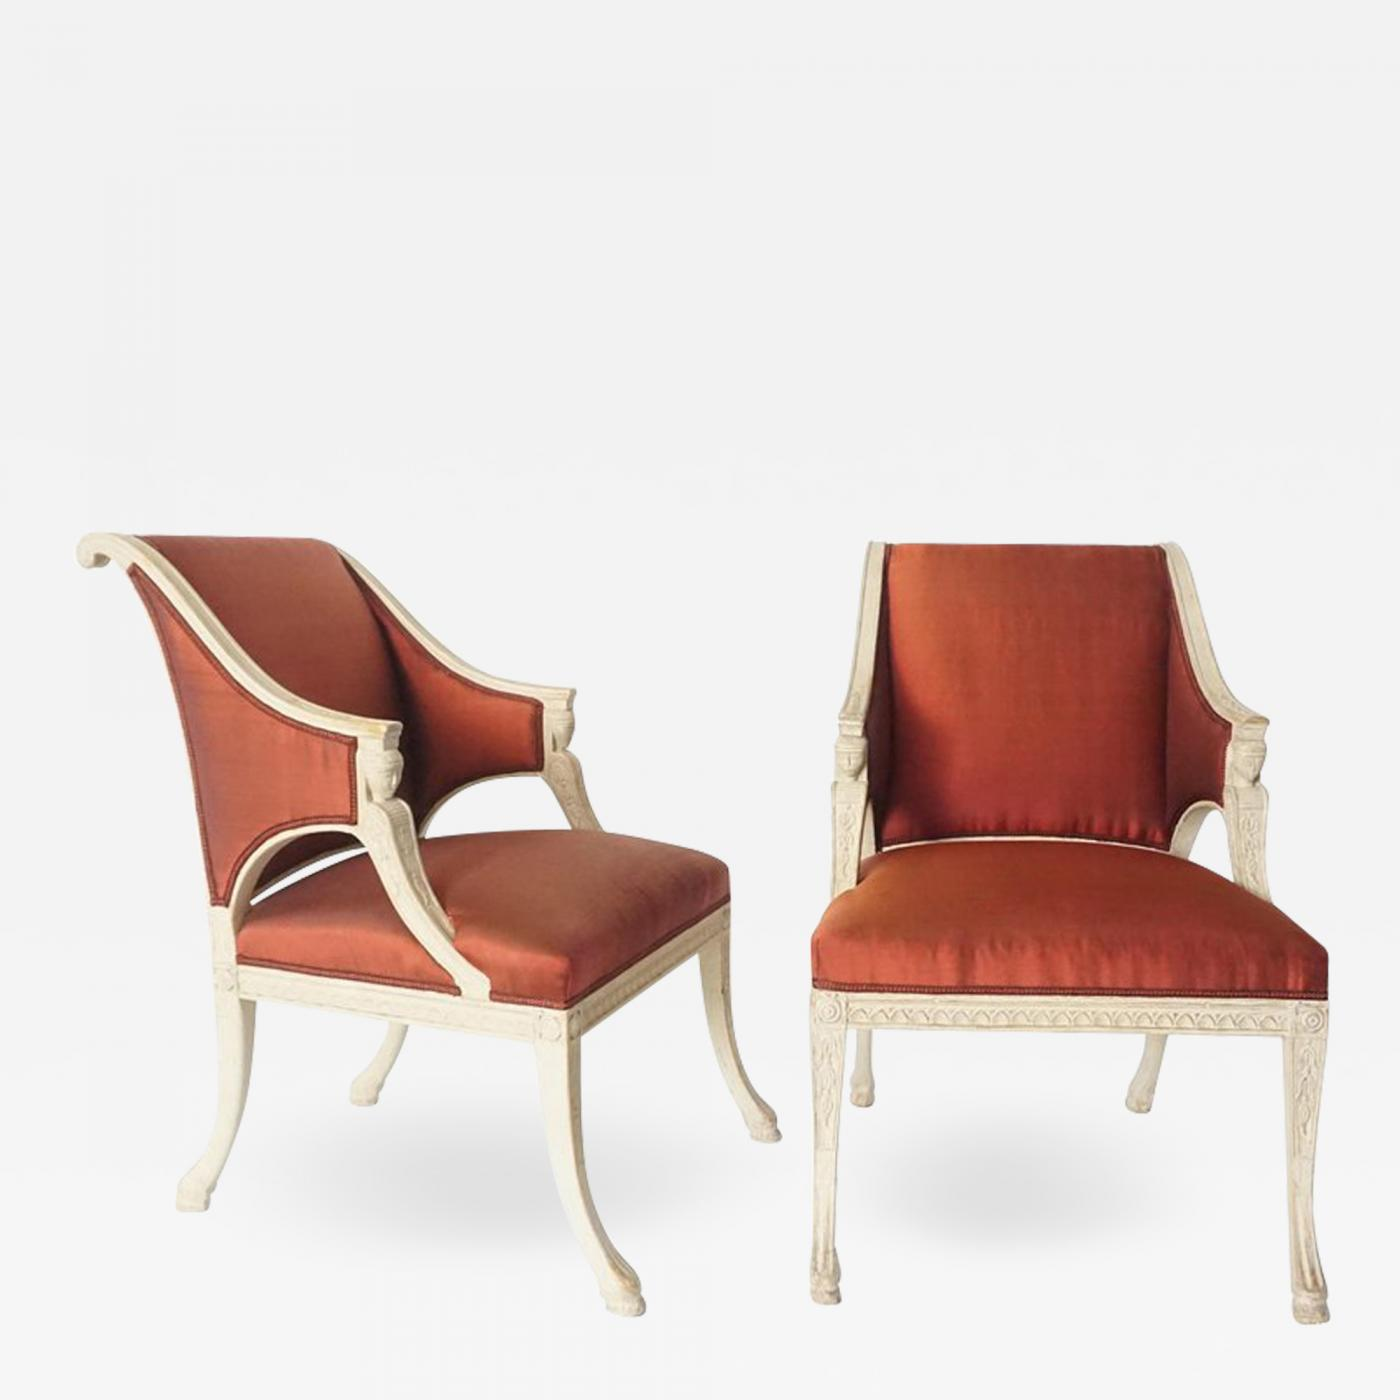 Ephraim Stahl Gustavian Chairs By Swedish Royal Court Chair